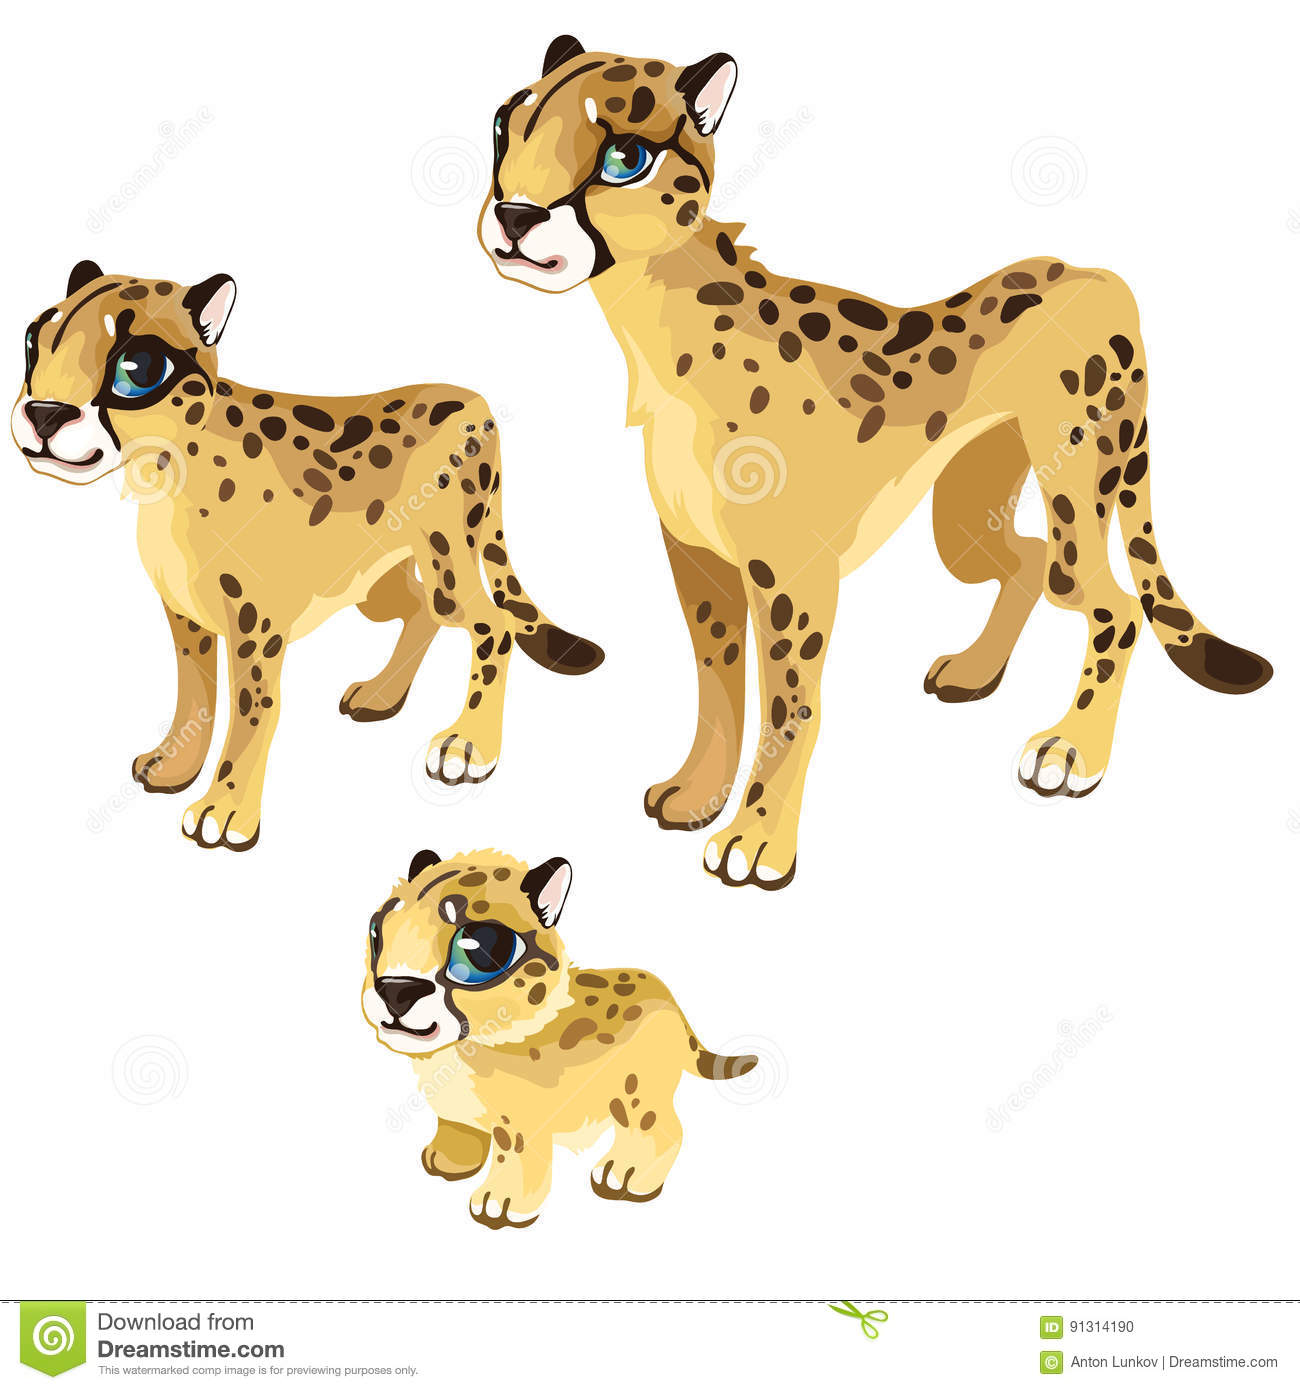 Maturation Stages Of The Leopard Vector Animal Stock